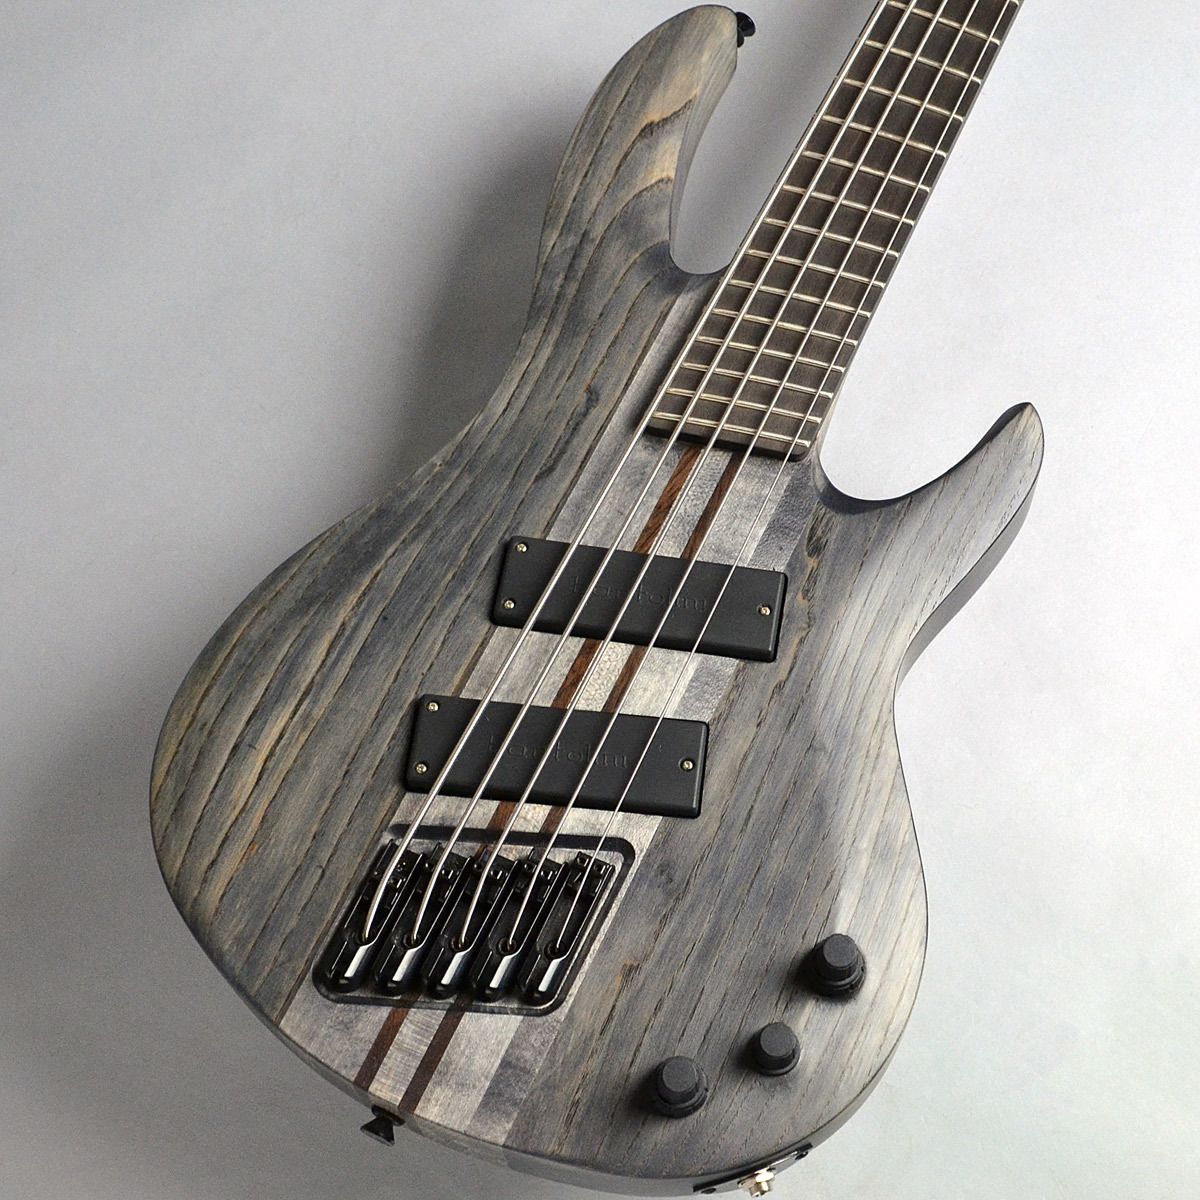 Strictly 7/ Guitars Sidewinder5 T T Fanned Fret/ Black Black Stain エレキベース(5弦)【ストリクトリー7ギターズ】【新宿PePe店】, 日本海珍味店さとも屋:6a76e894 --- officewill.xsrv.jp